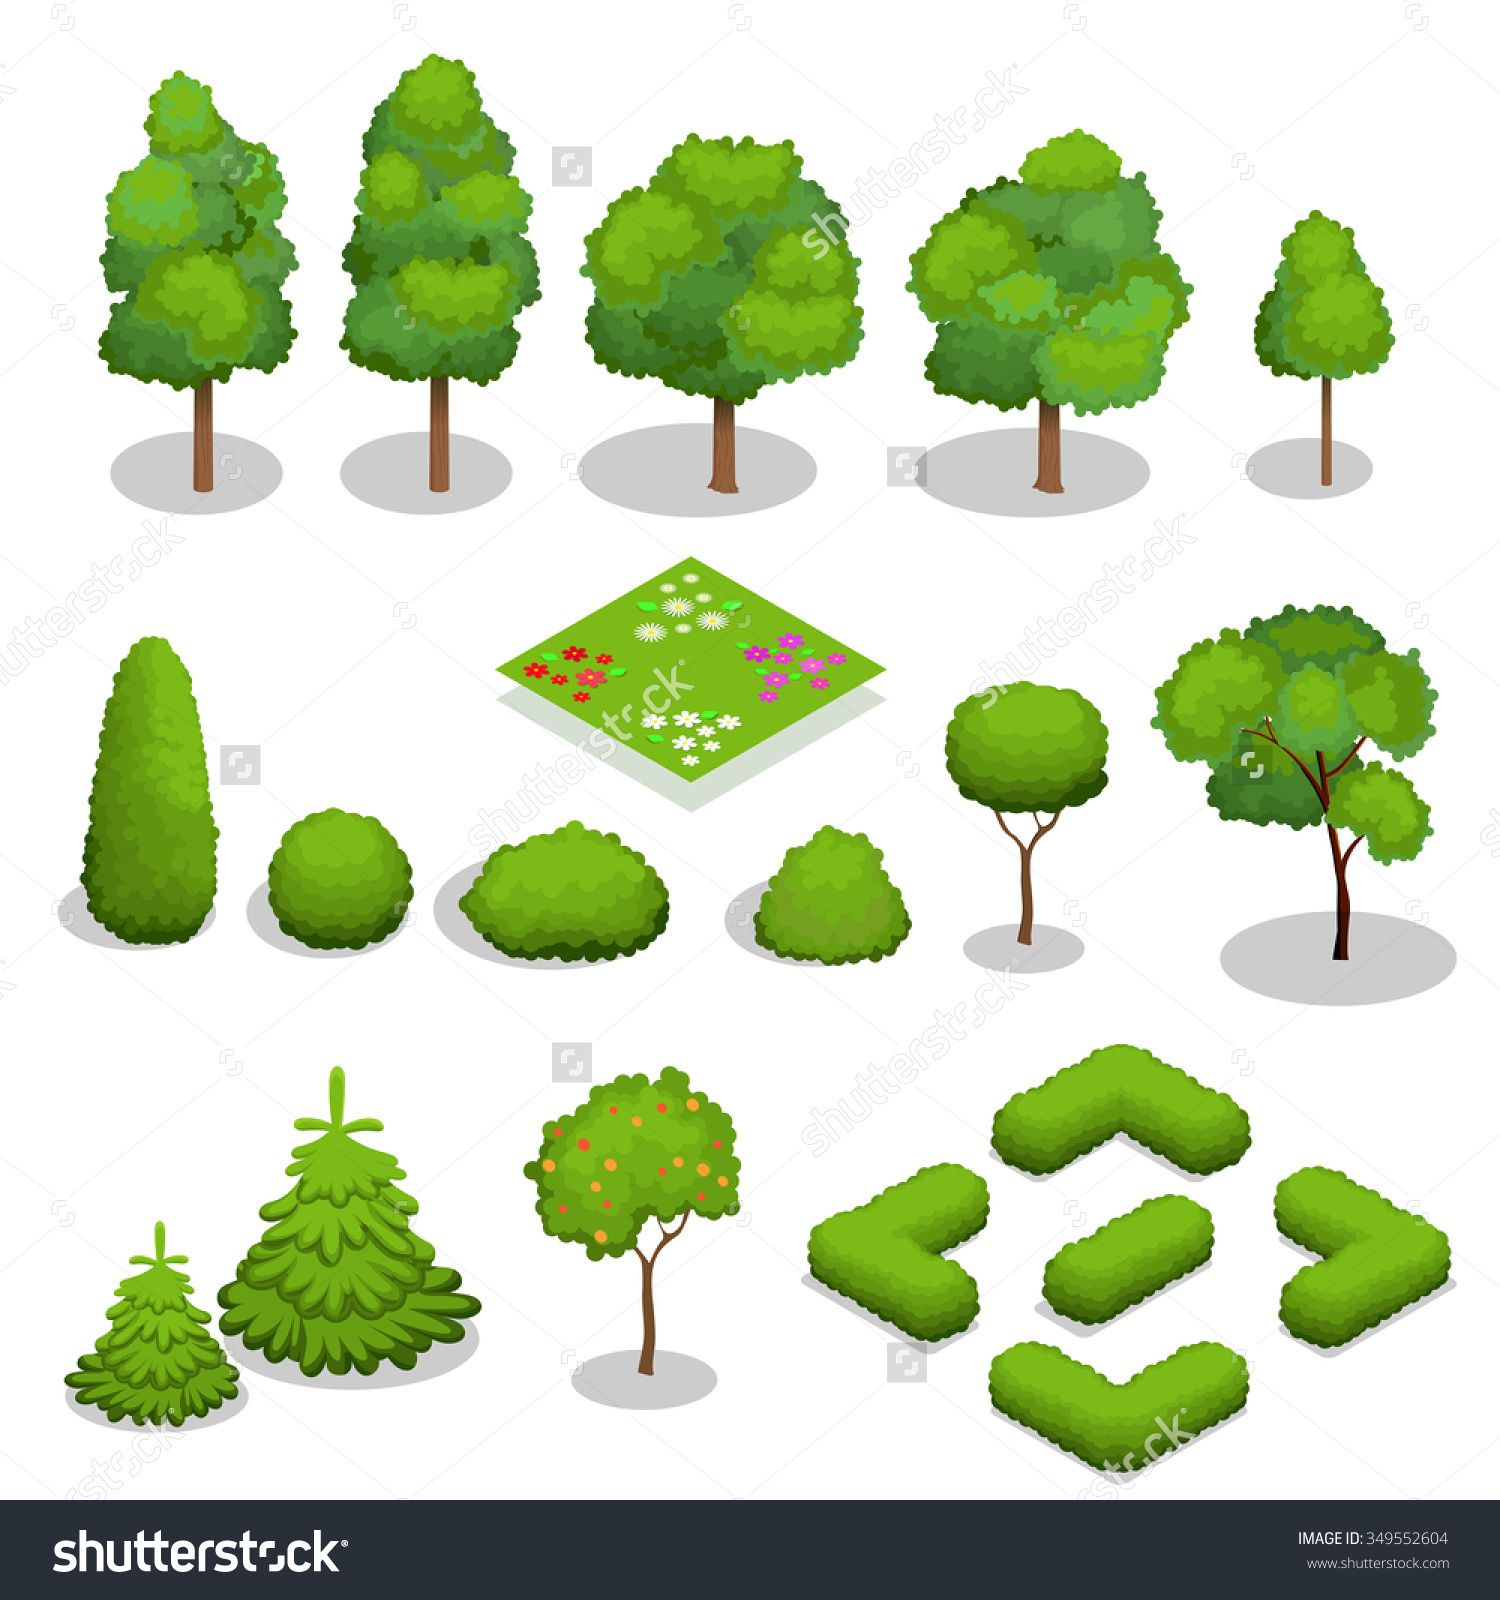 free Trees isometric flowers grass. Vector bushes illustrator